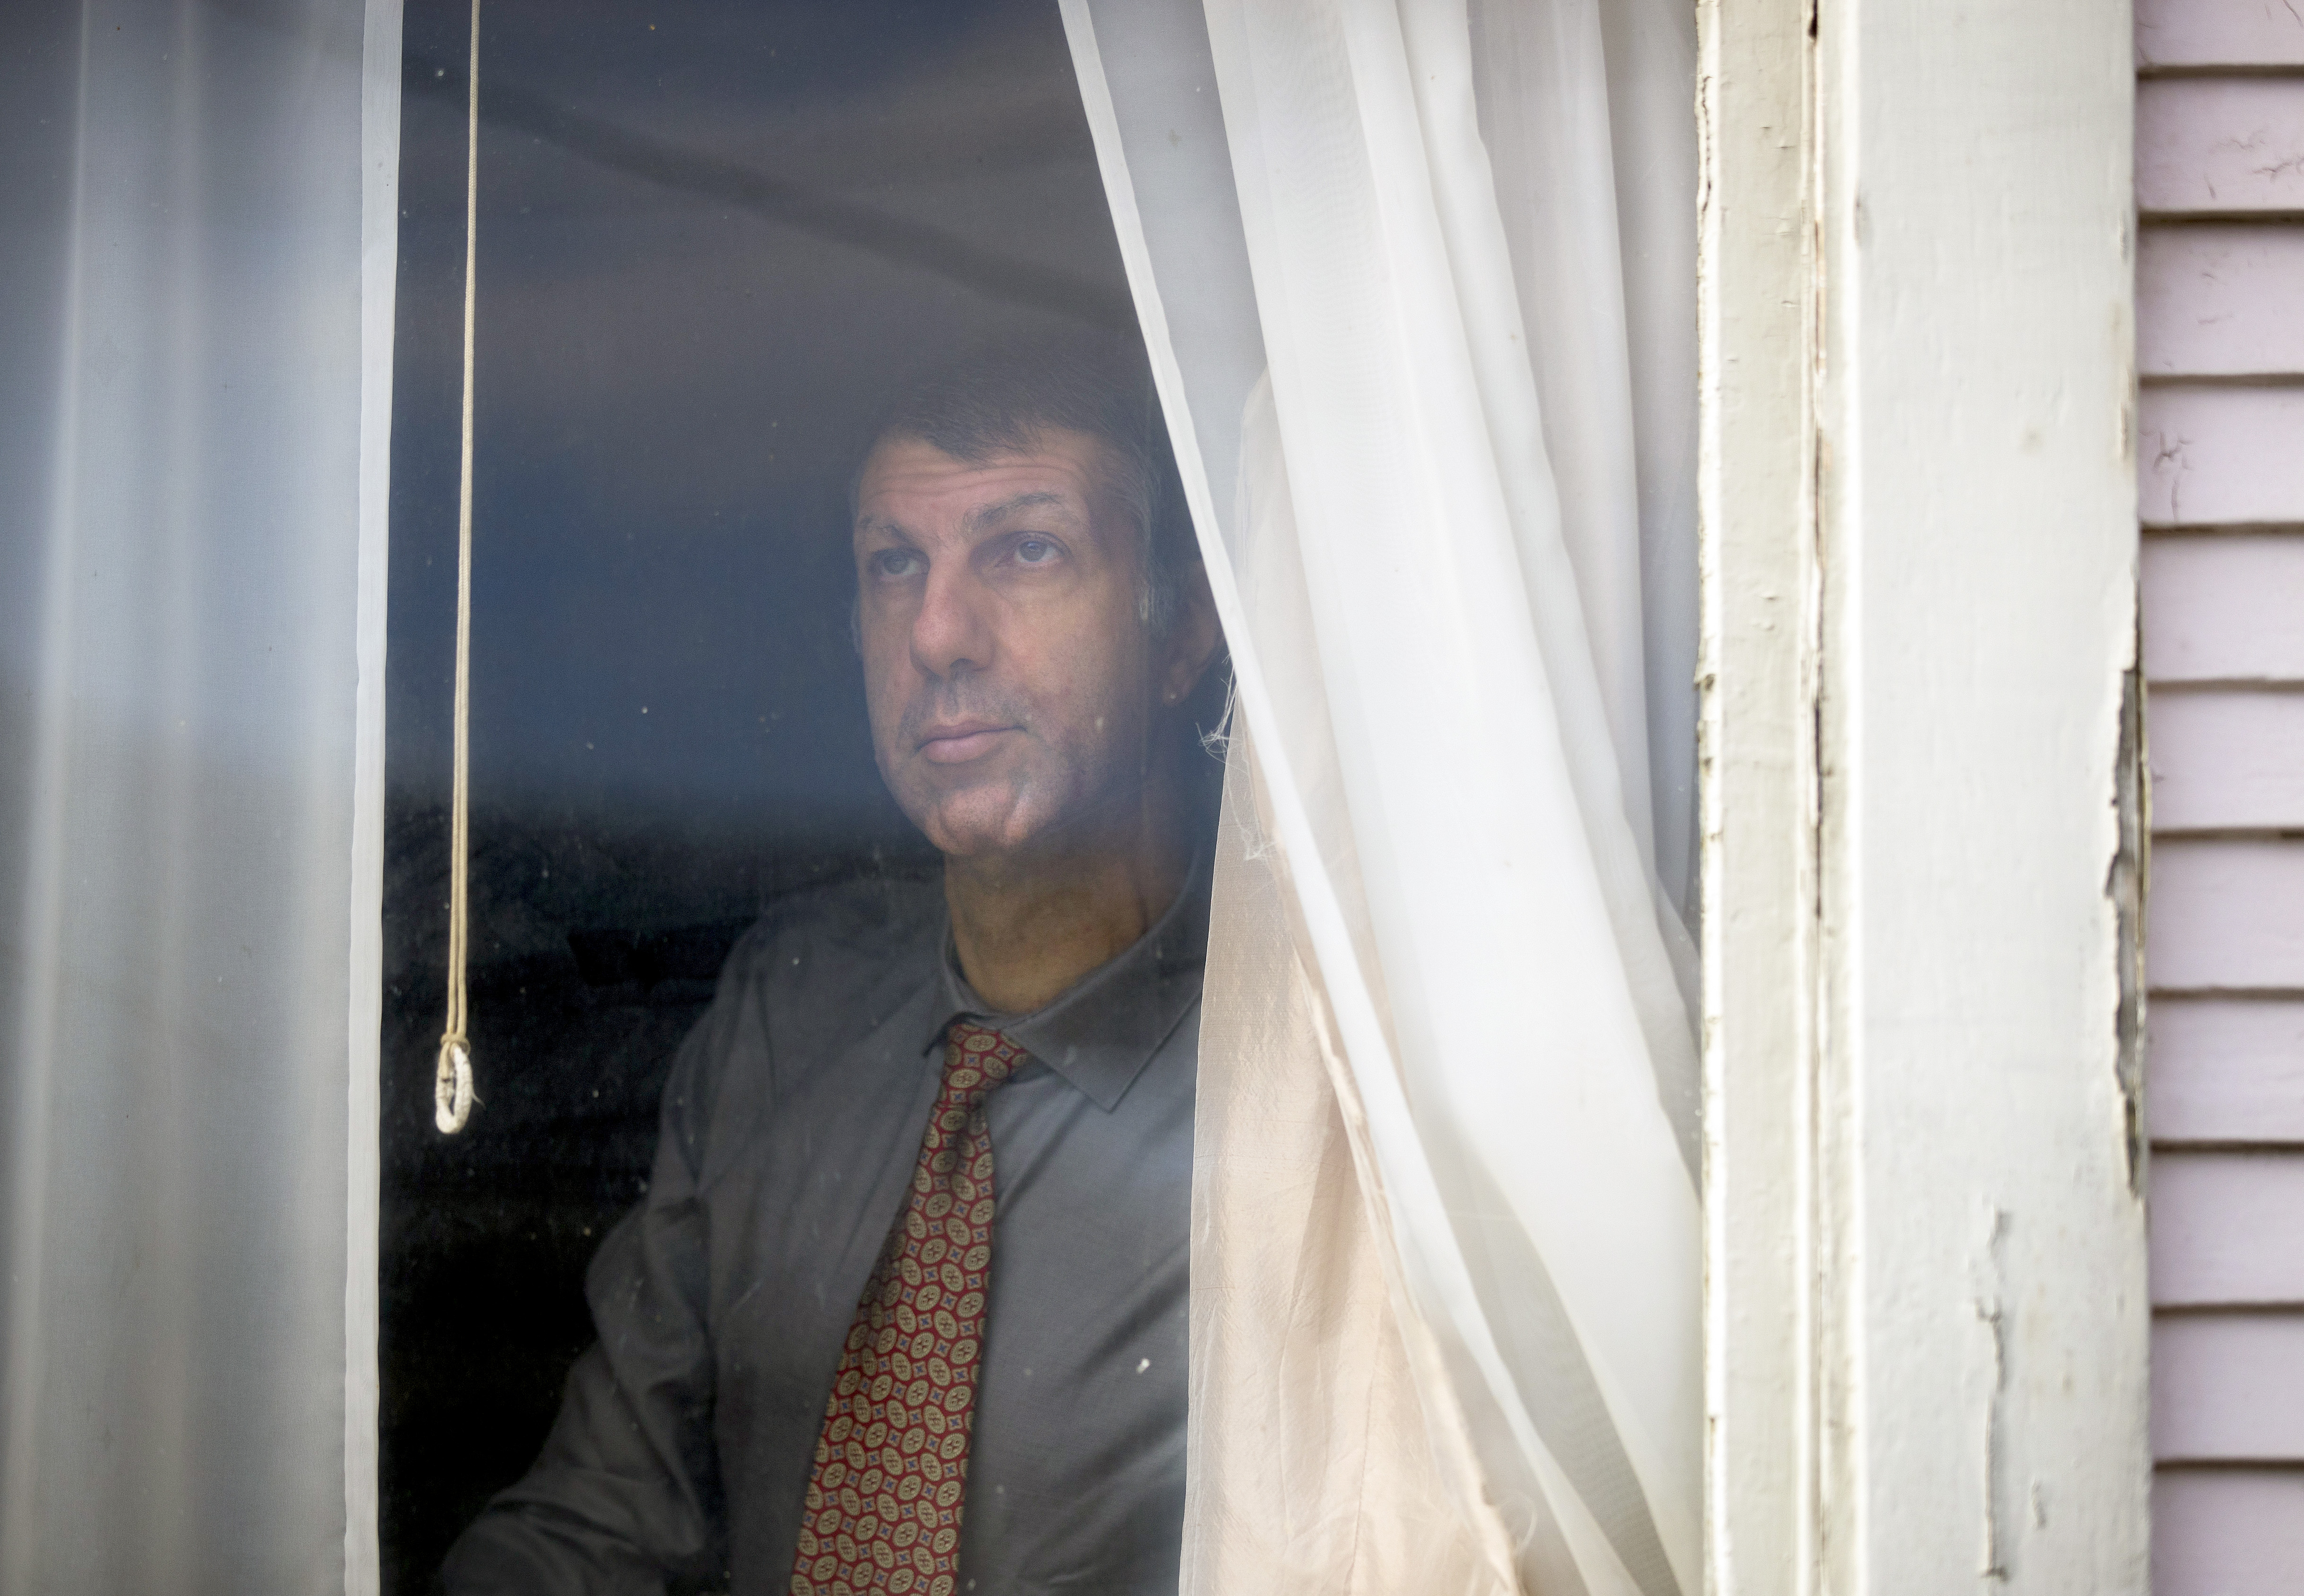 Joe Dibee is portrayed while looking out of a window at his family's home on Wednesday, February 17, 2021, in Seattle.